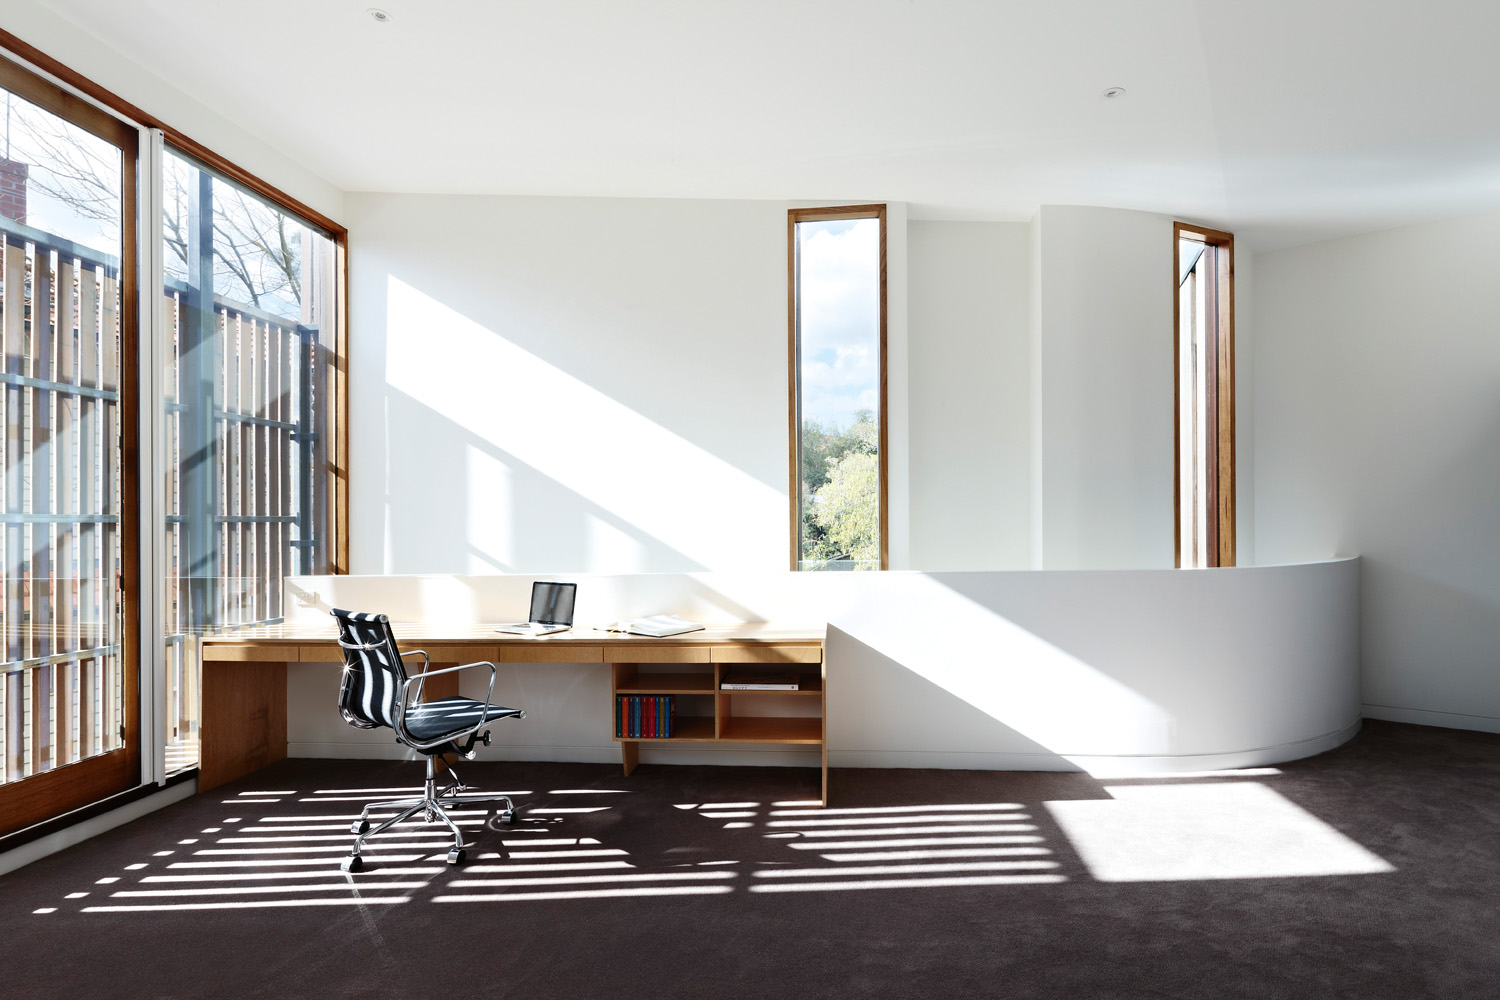 Grand Designs Australia: Tree house bungalow - Completehome